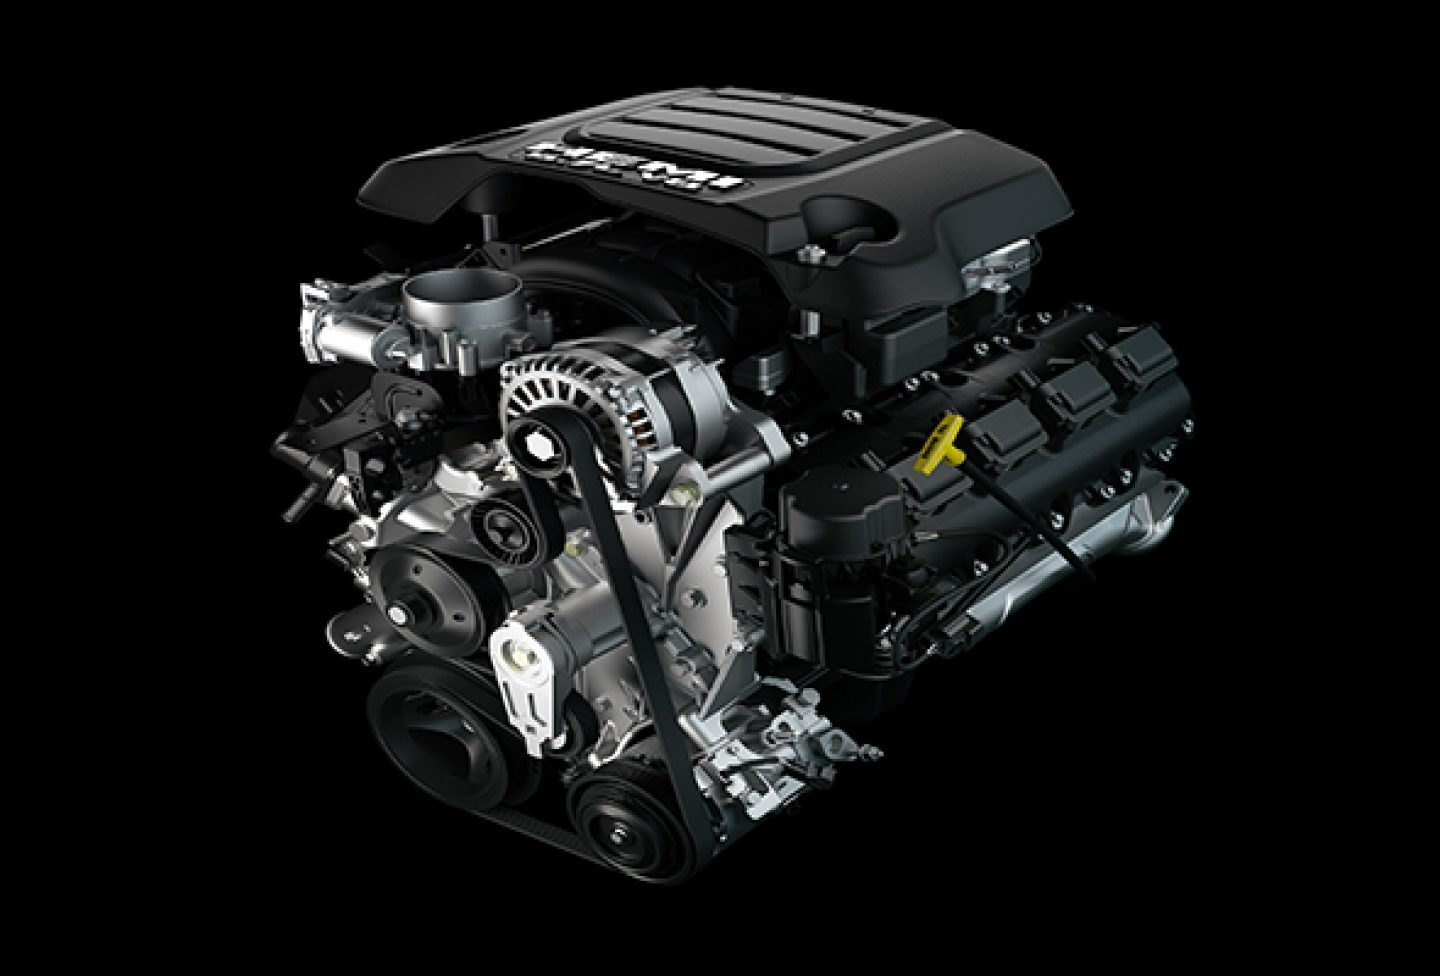 hight resolution of 5 7l hemi v8 engine with vvt and fuel saver technology